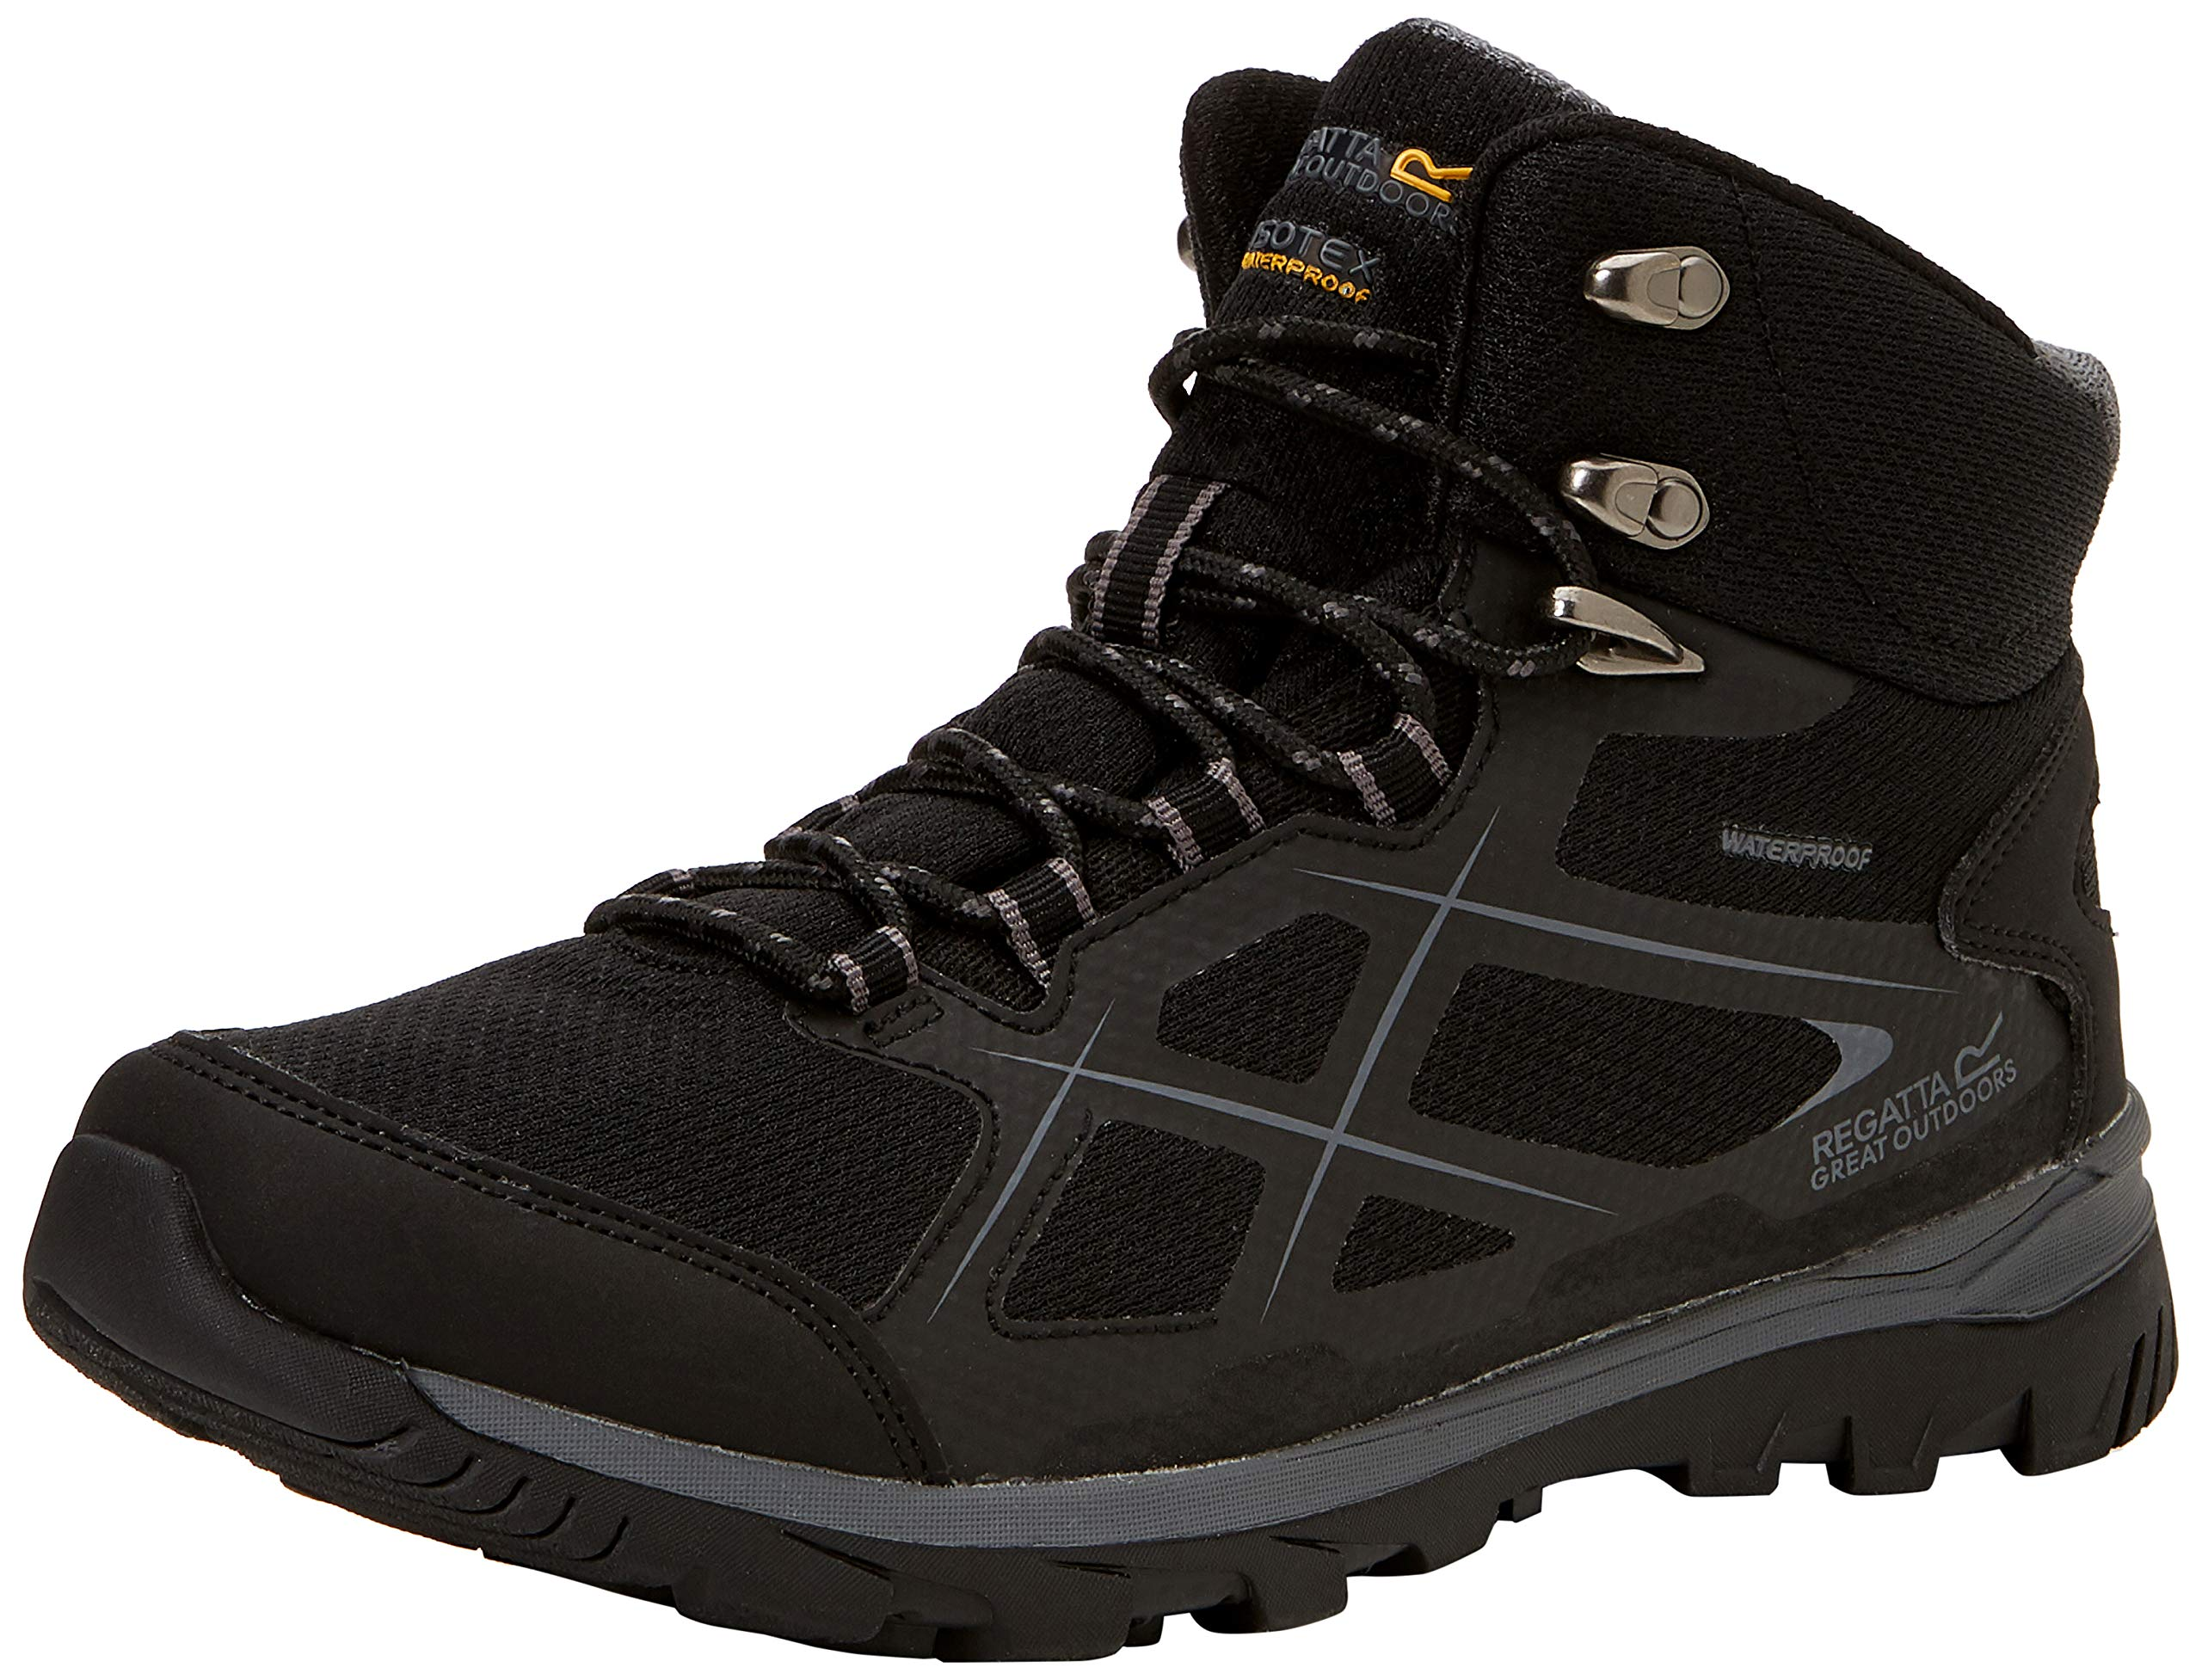 81e 7HyJqXL - Regatta Kota Mid, Men's's High Rise Hiking Boots